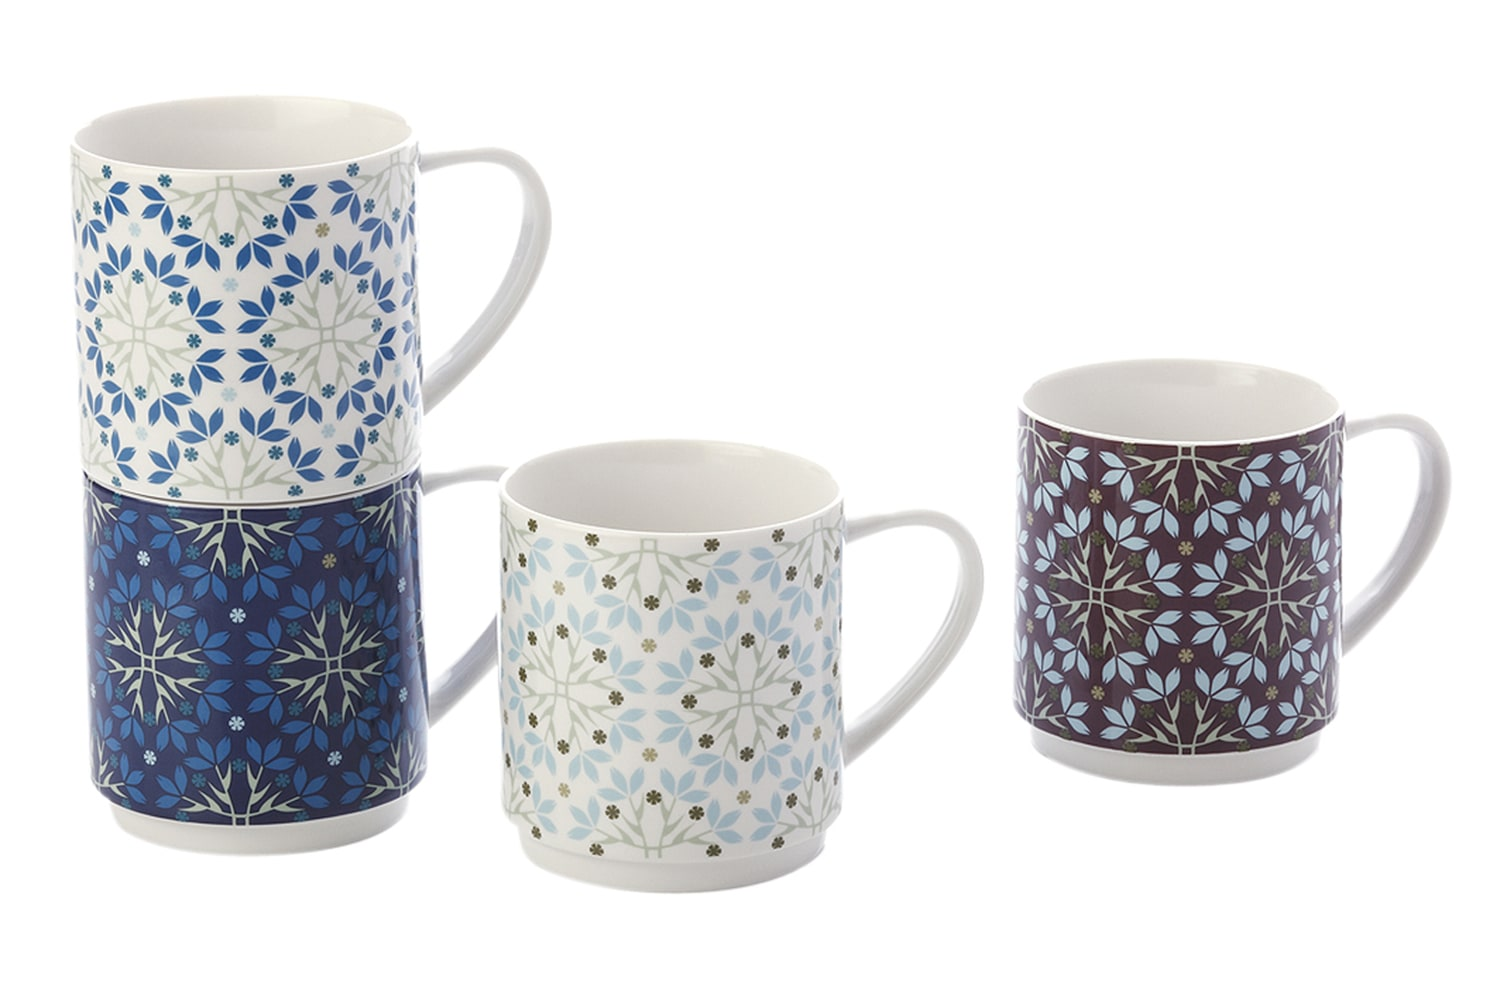 Maxwell & Williams Artic Set Of 4 Mugs Gift Boxed